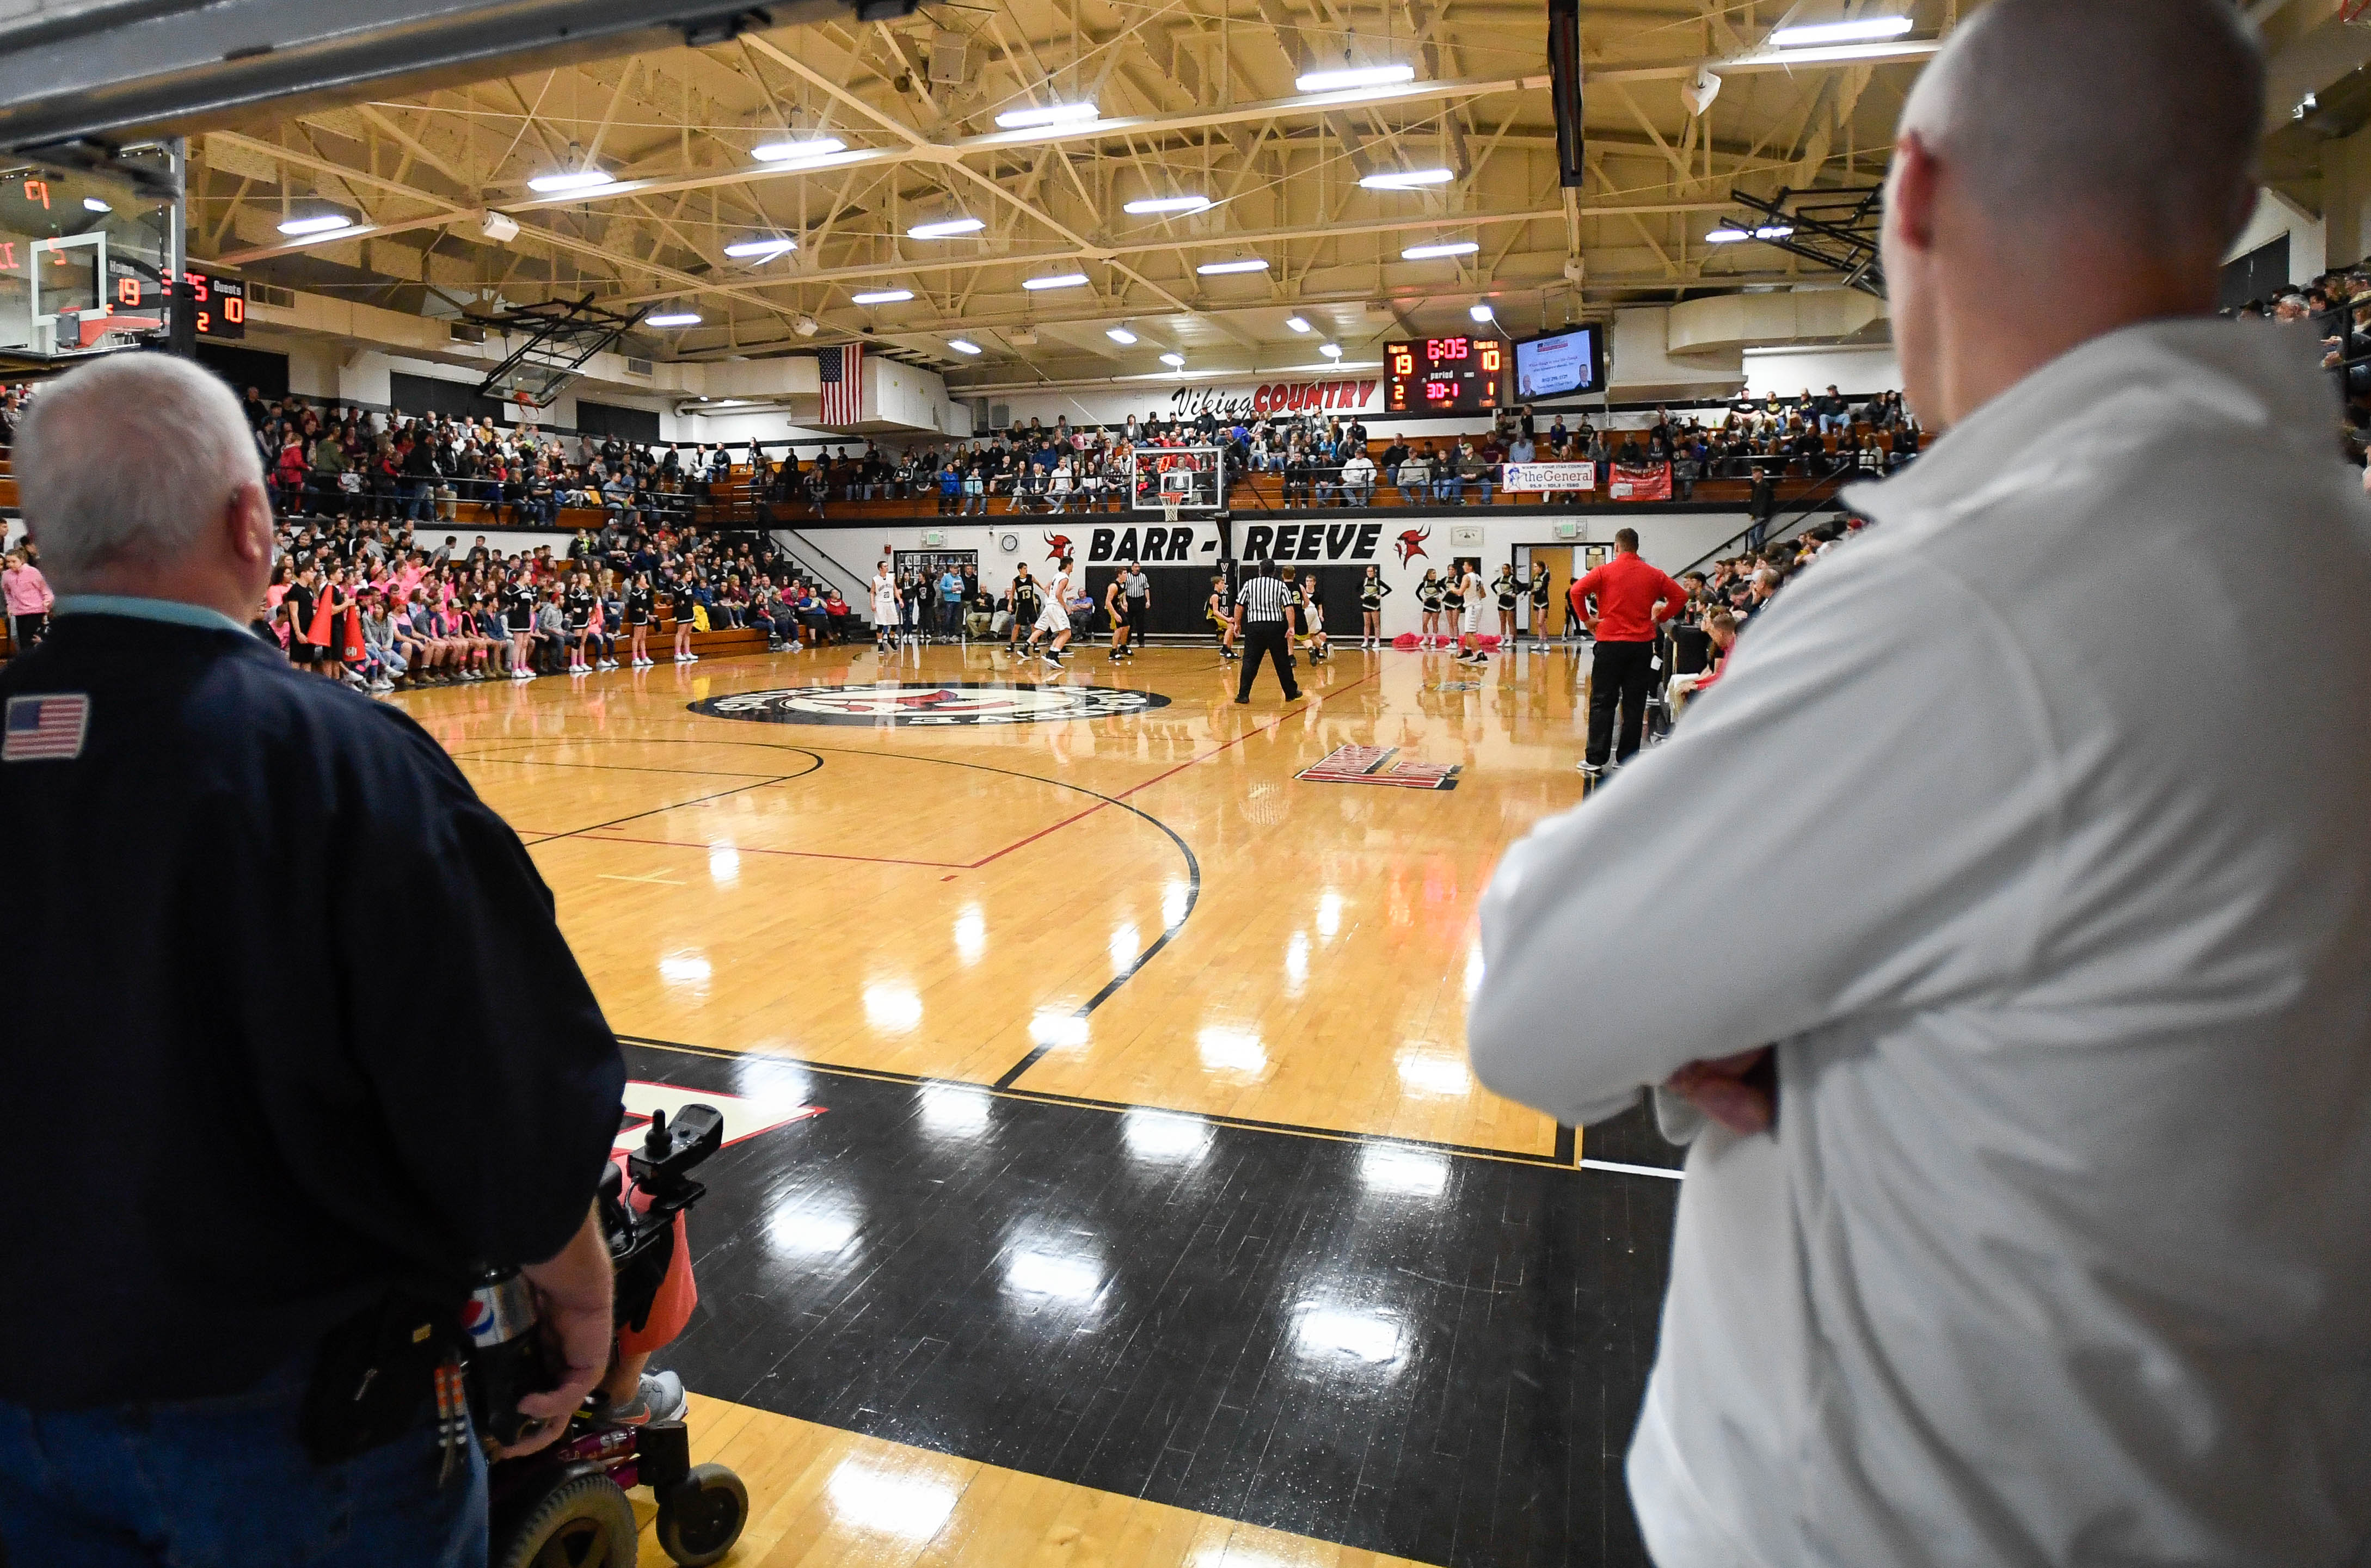 Paul Arvin, left, and Jeff Doyle frame the doorway as they watch the junior varsity game at the rapidly filling Kavanaugh Kourt at Barr-Reeve  high school Friday, January 11, 2019.